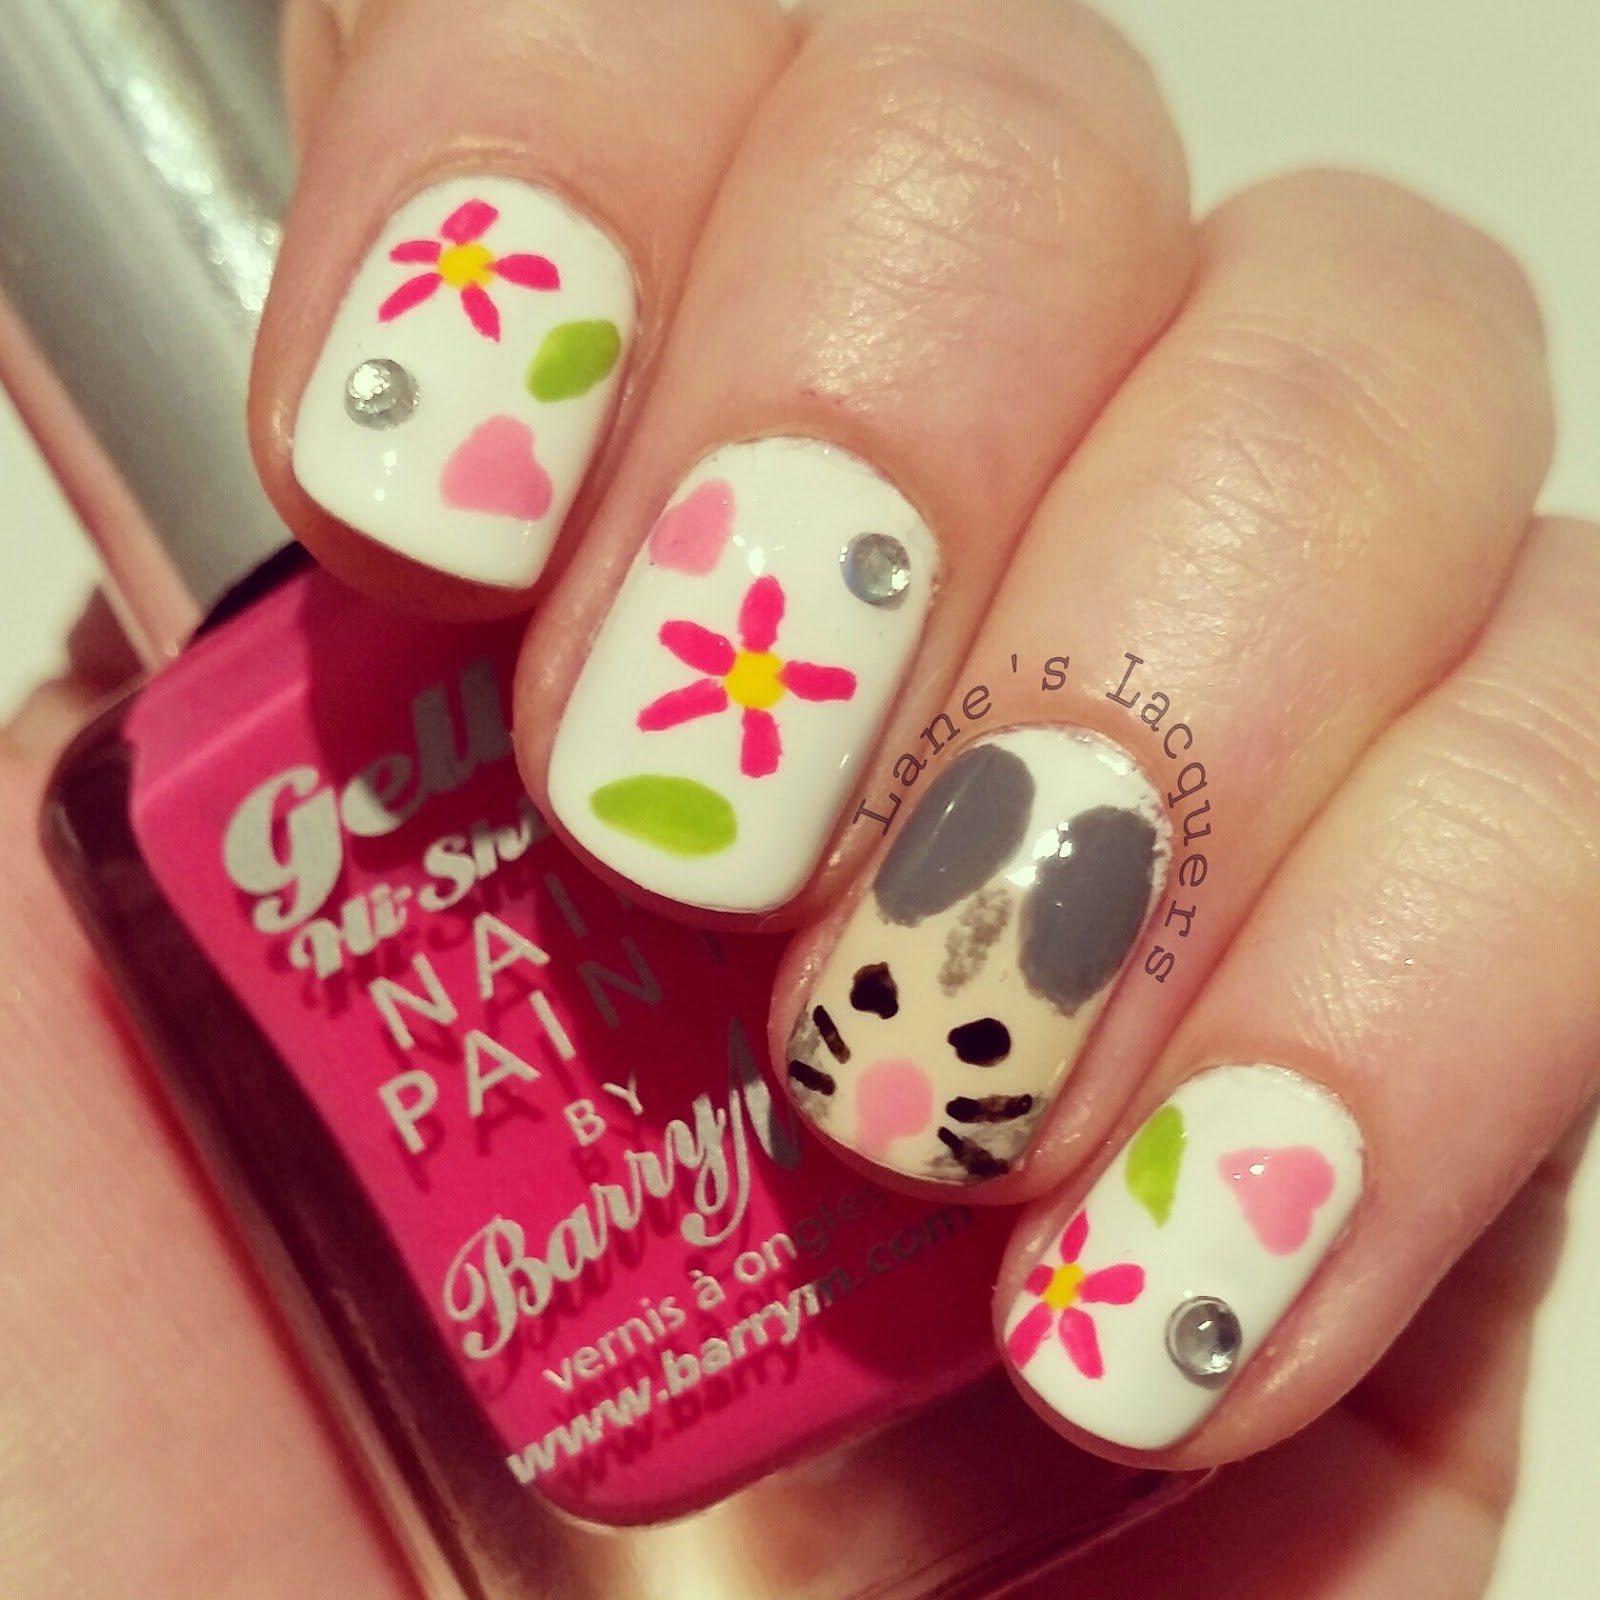 barry-m-hand-painted-happiness-hamster-love-flowers-sparkle-nail-art (2)